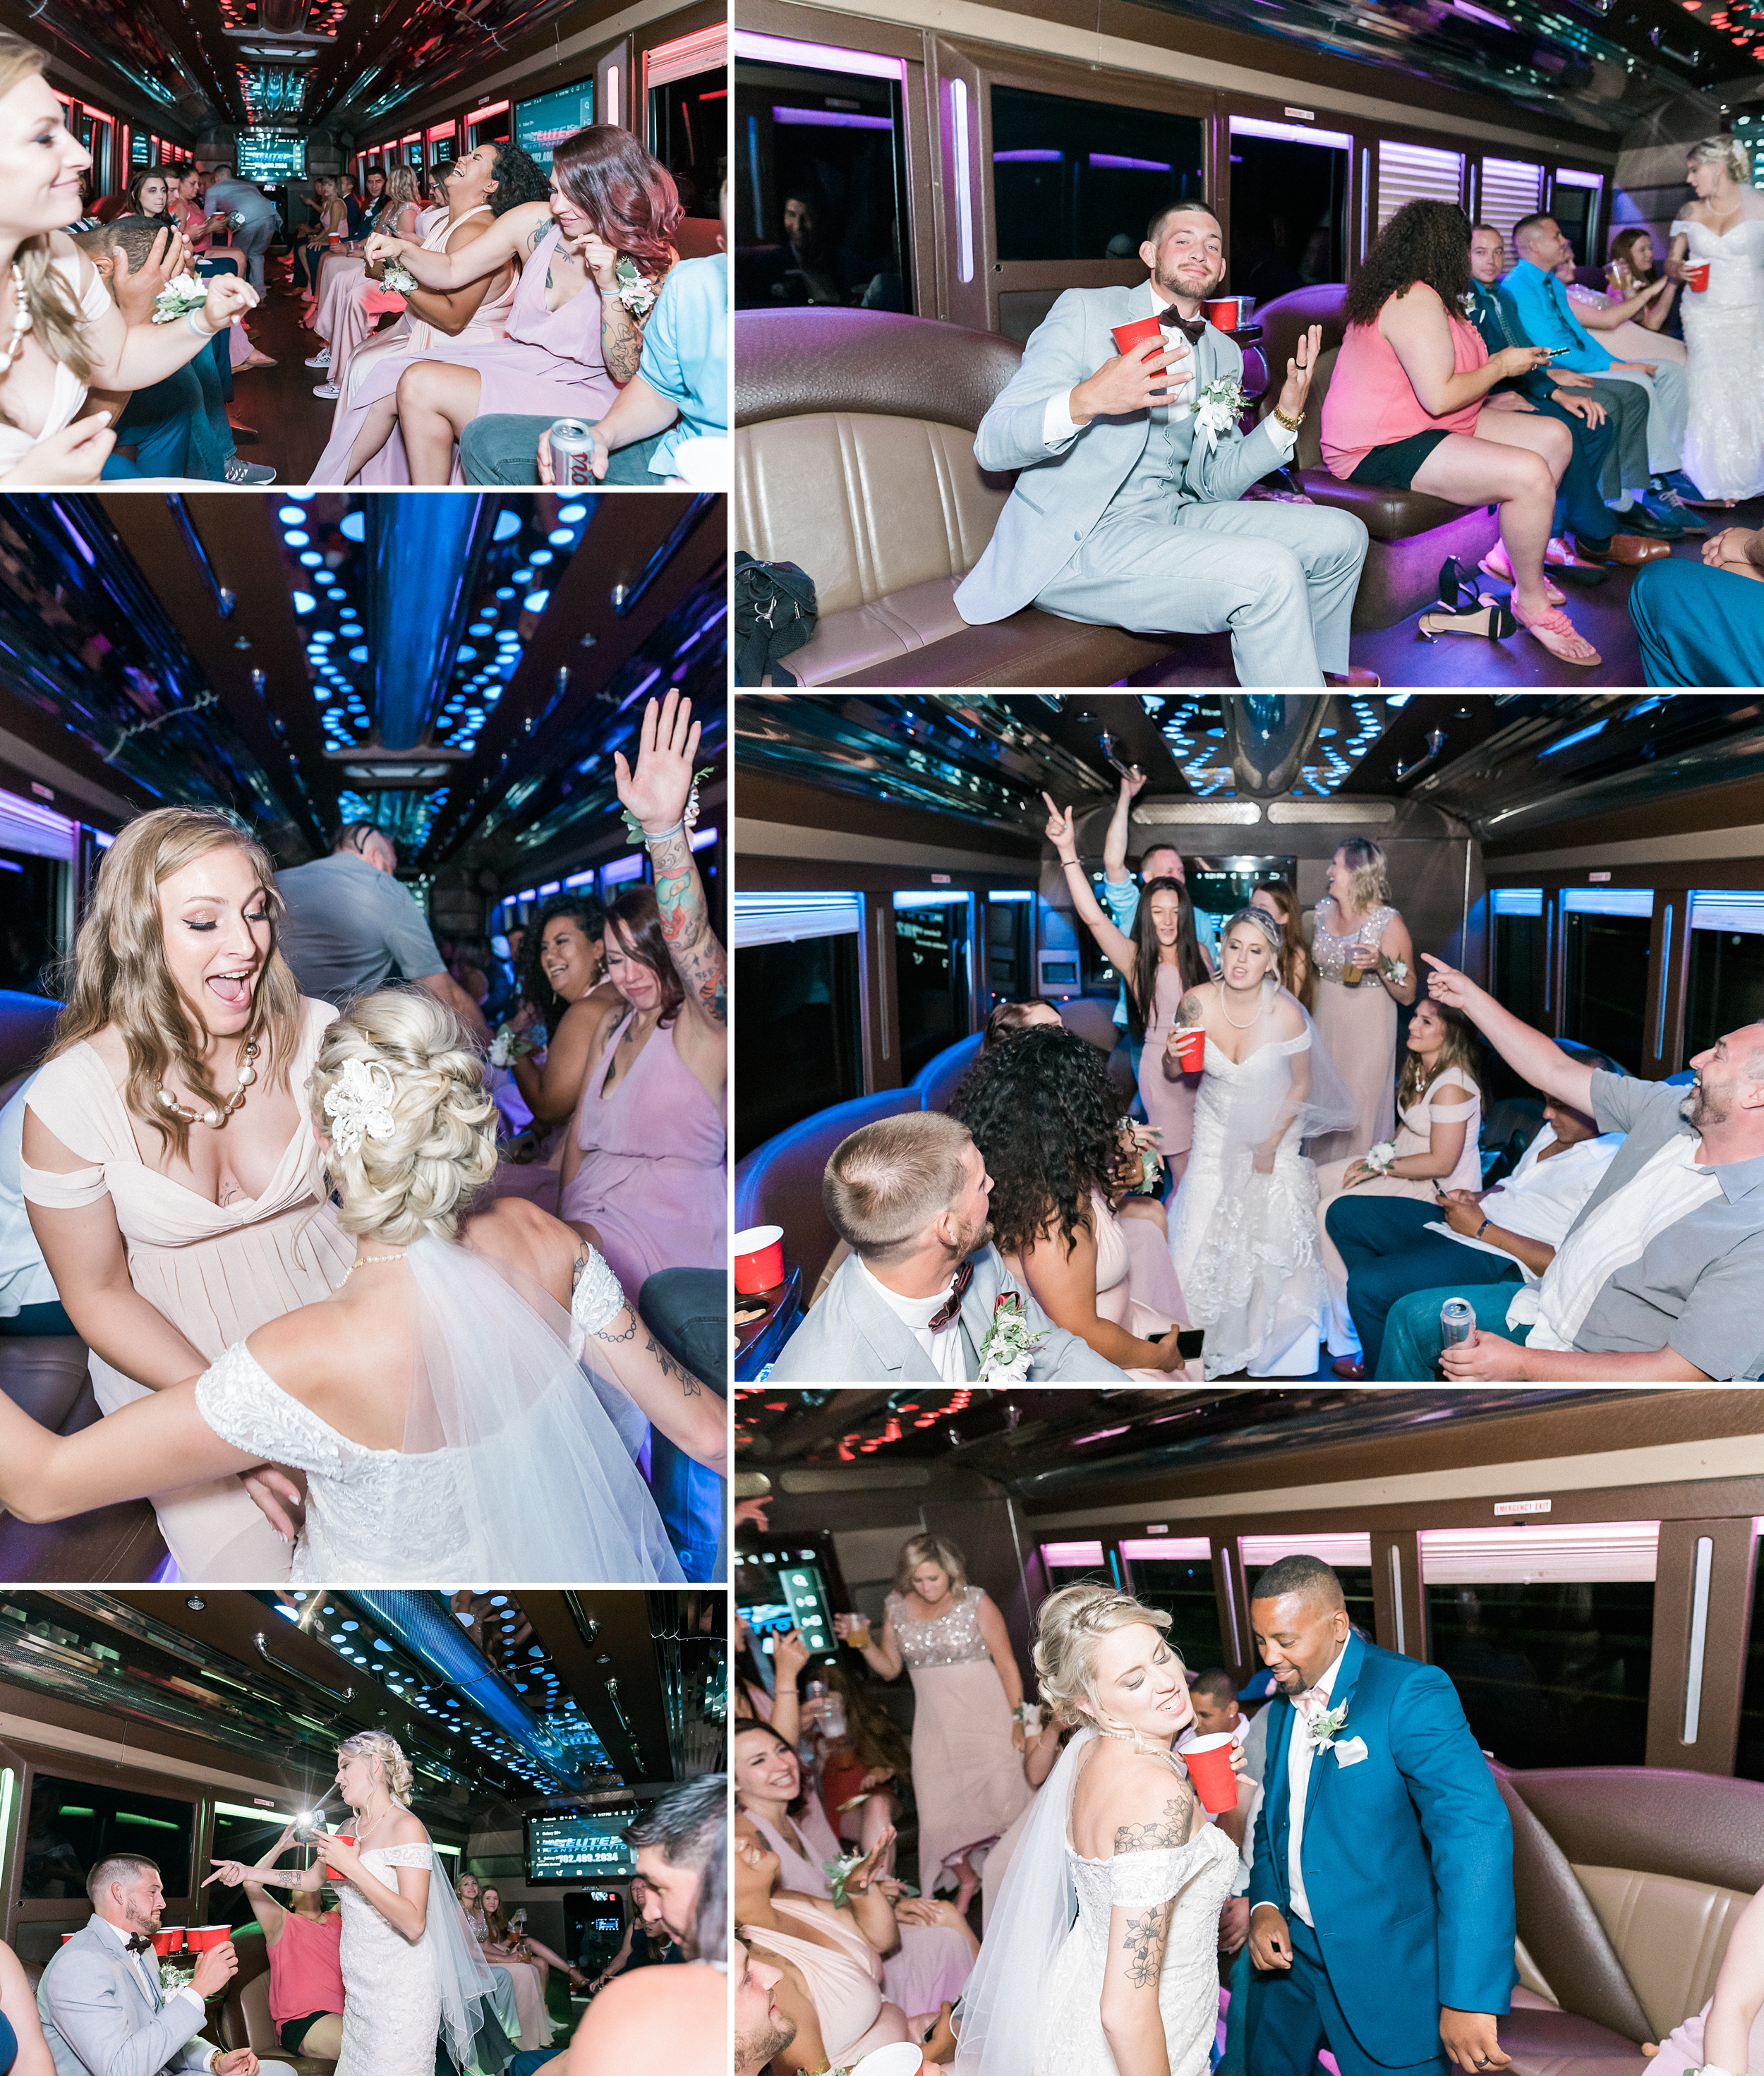 Bridal party on a Party Bus Las Vegas Elopement Wedding. Mount C